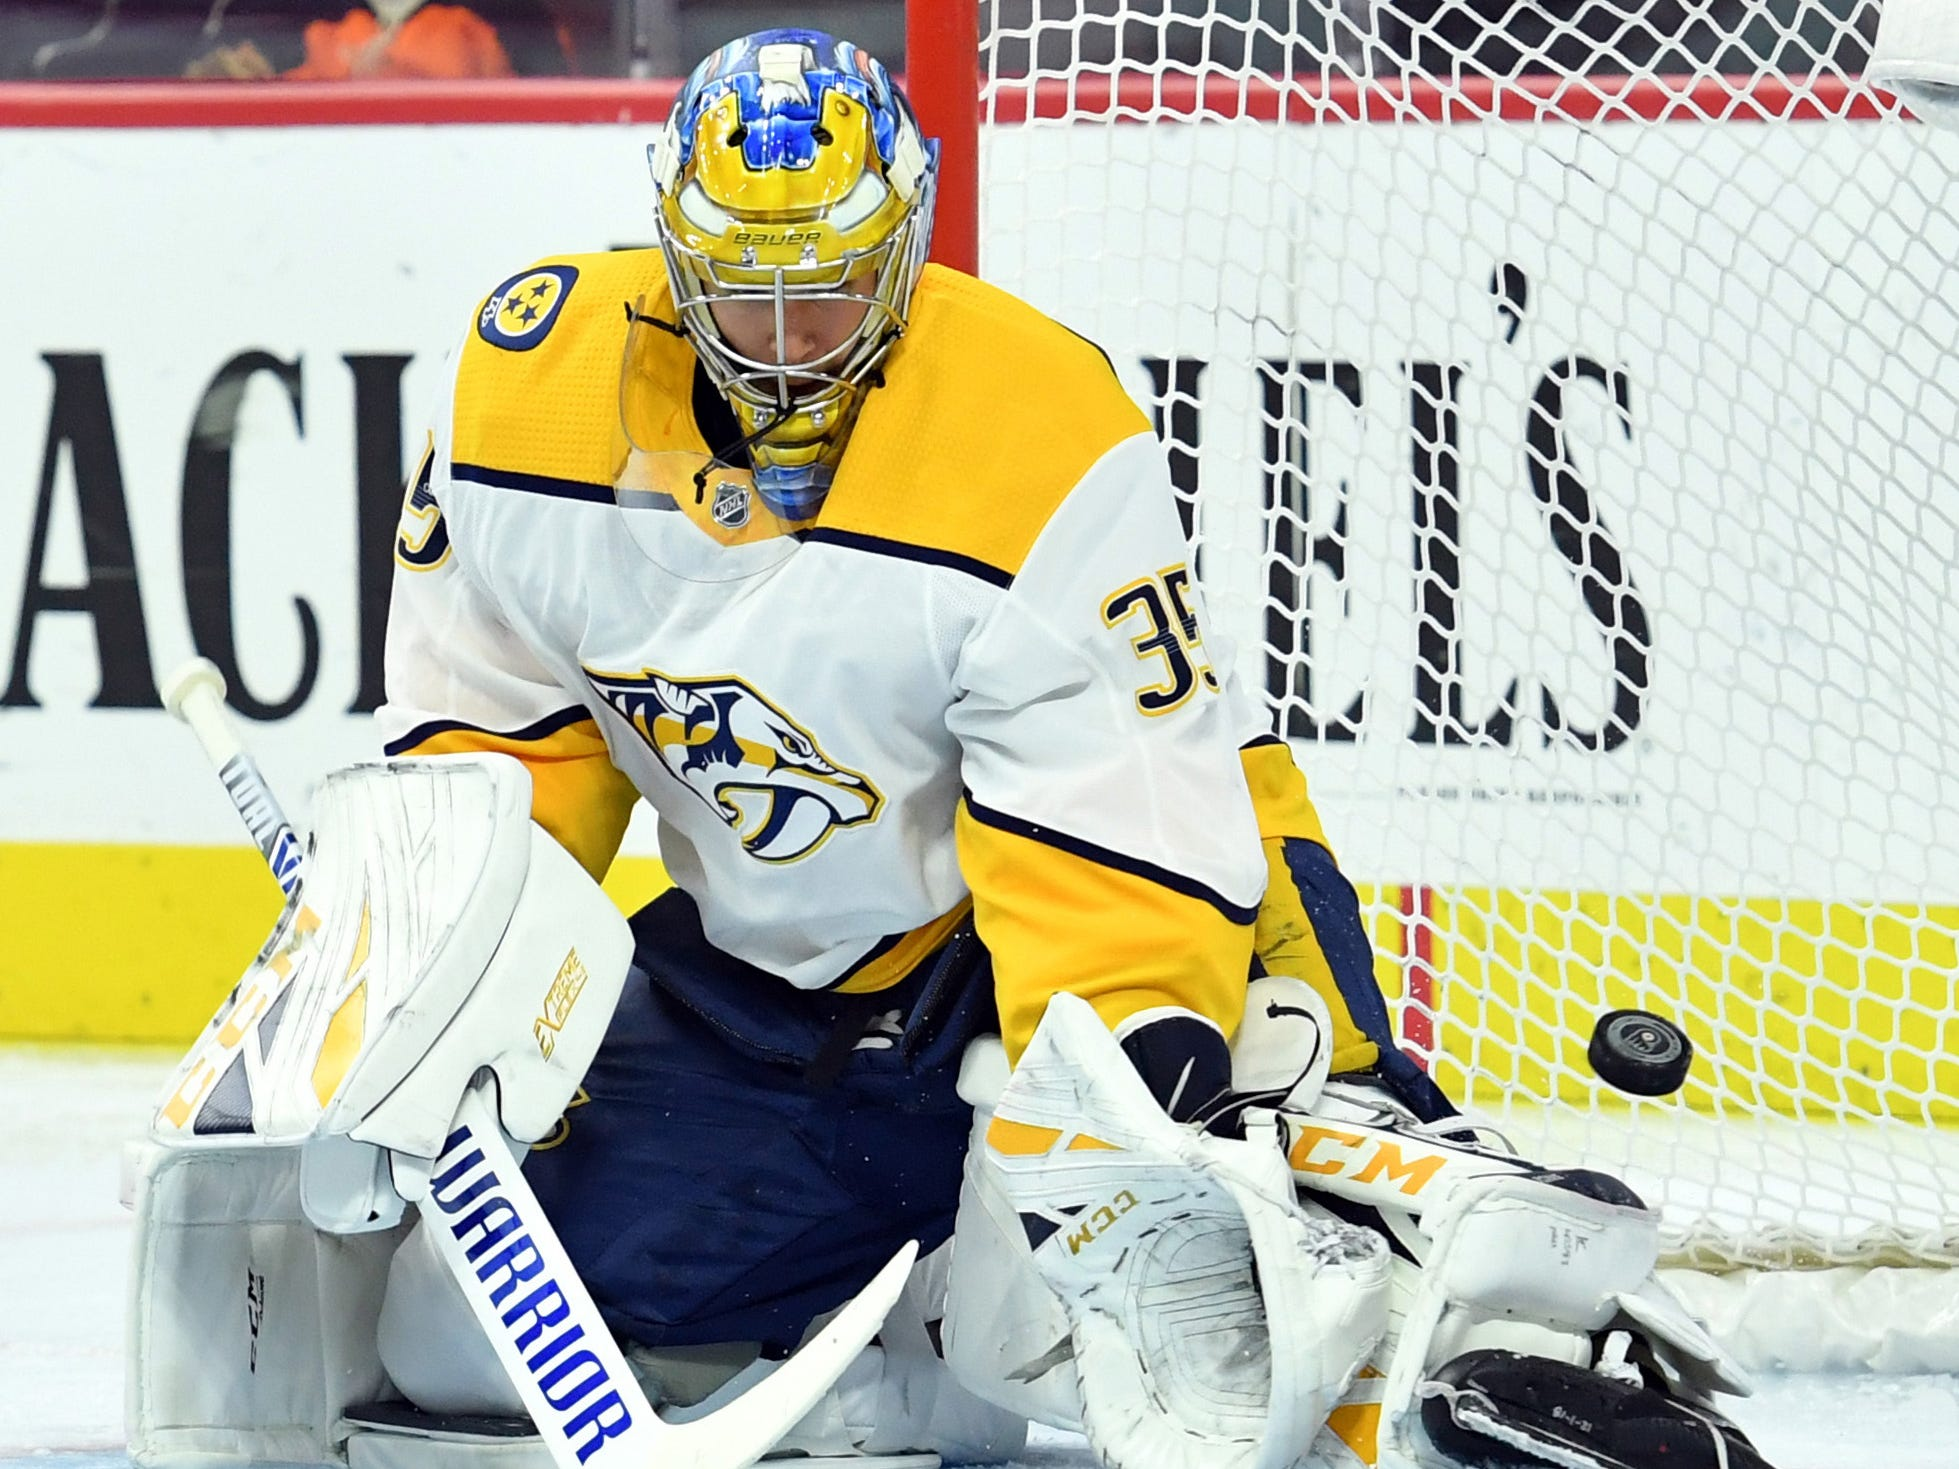 Nashville Predators goaltender Pekka Rinne (35) makes a save during the second period against the Philadelphia Flyers at Wells Fargo Center.